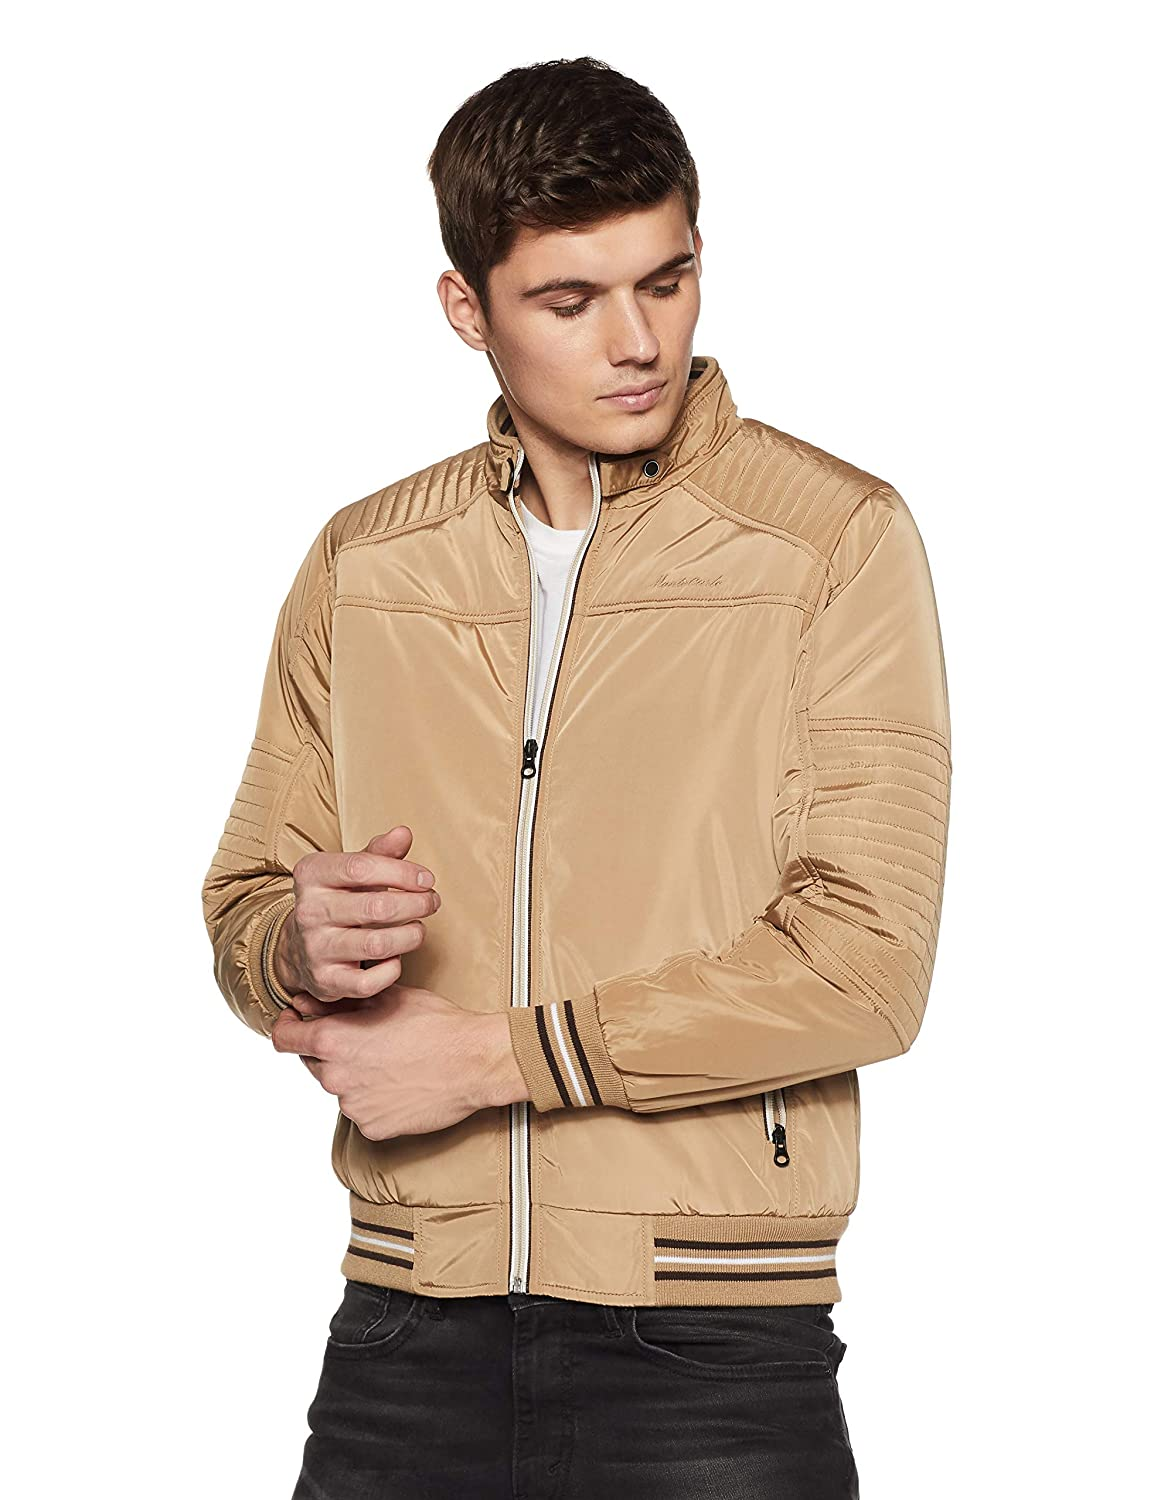 be33d2cf1890f Monte Carlo Men s Jacket  Amazon.in  Clothing   Accessories